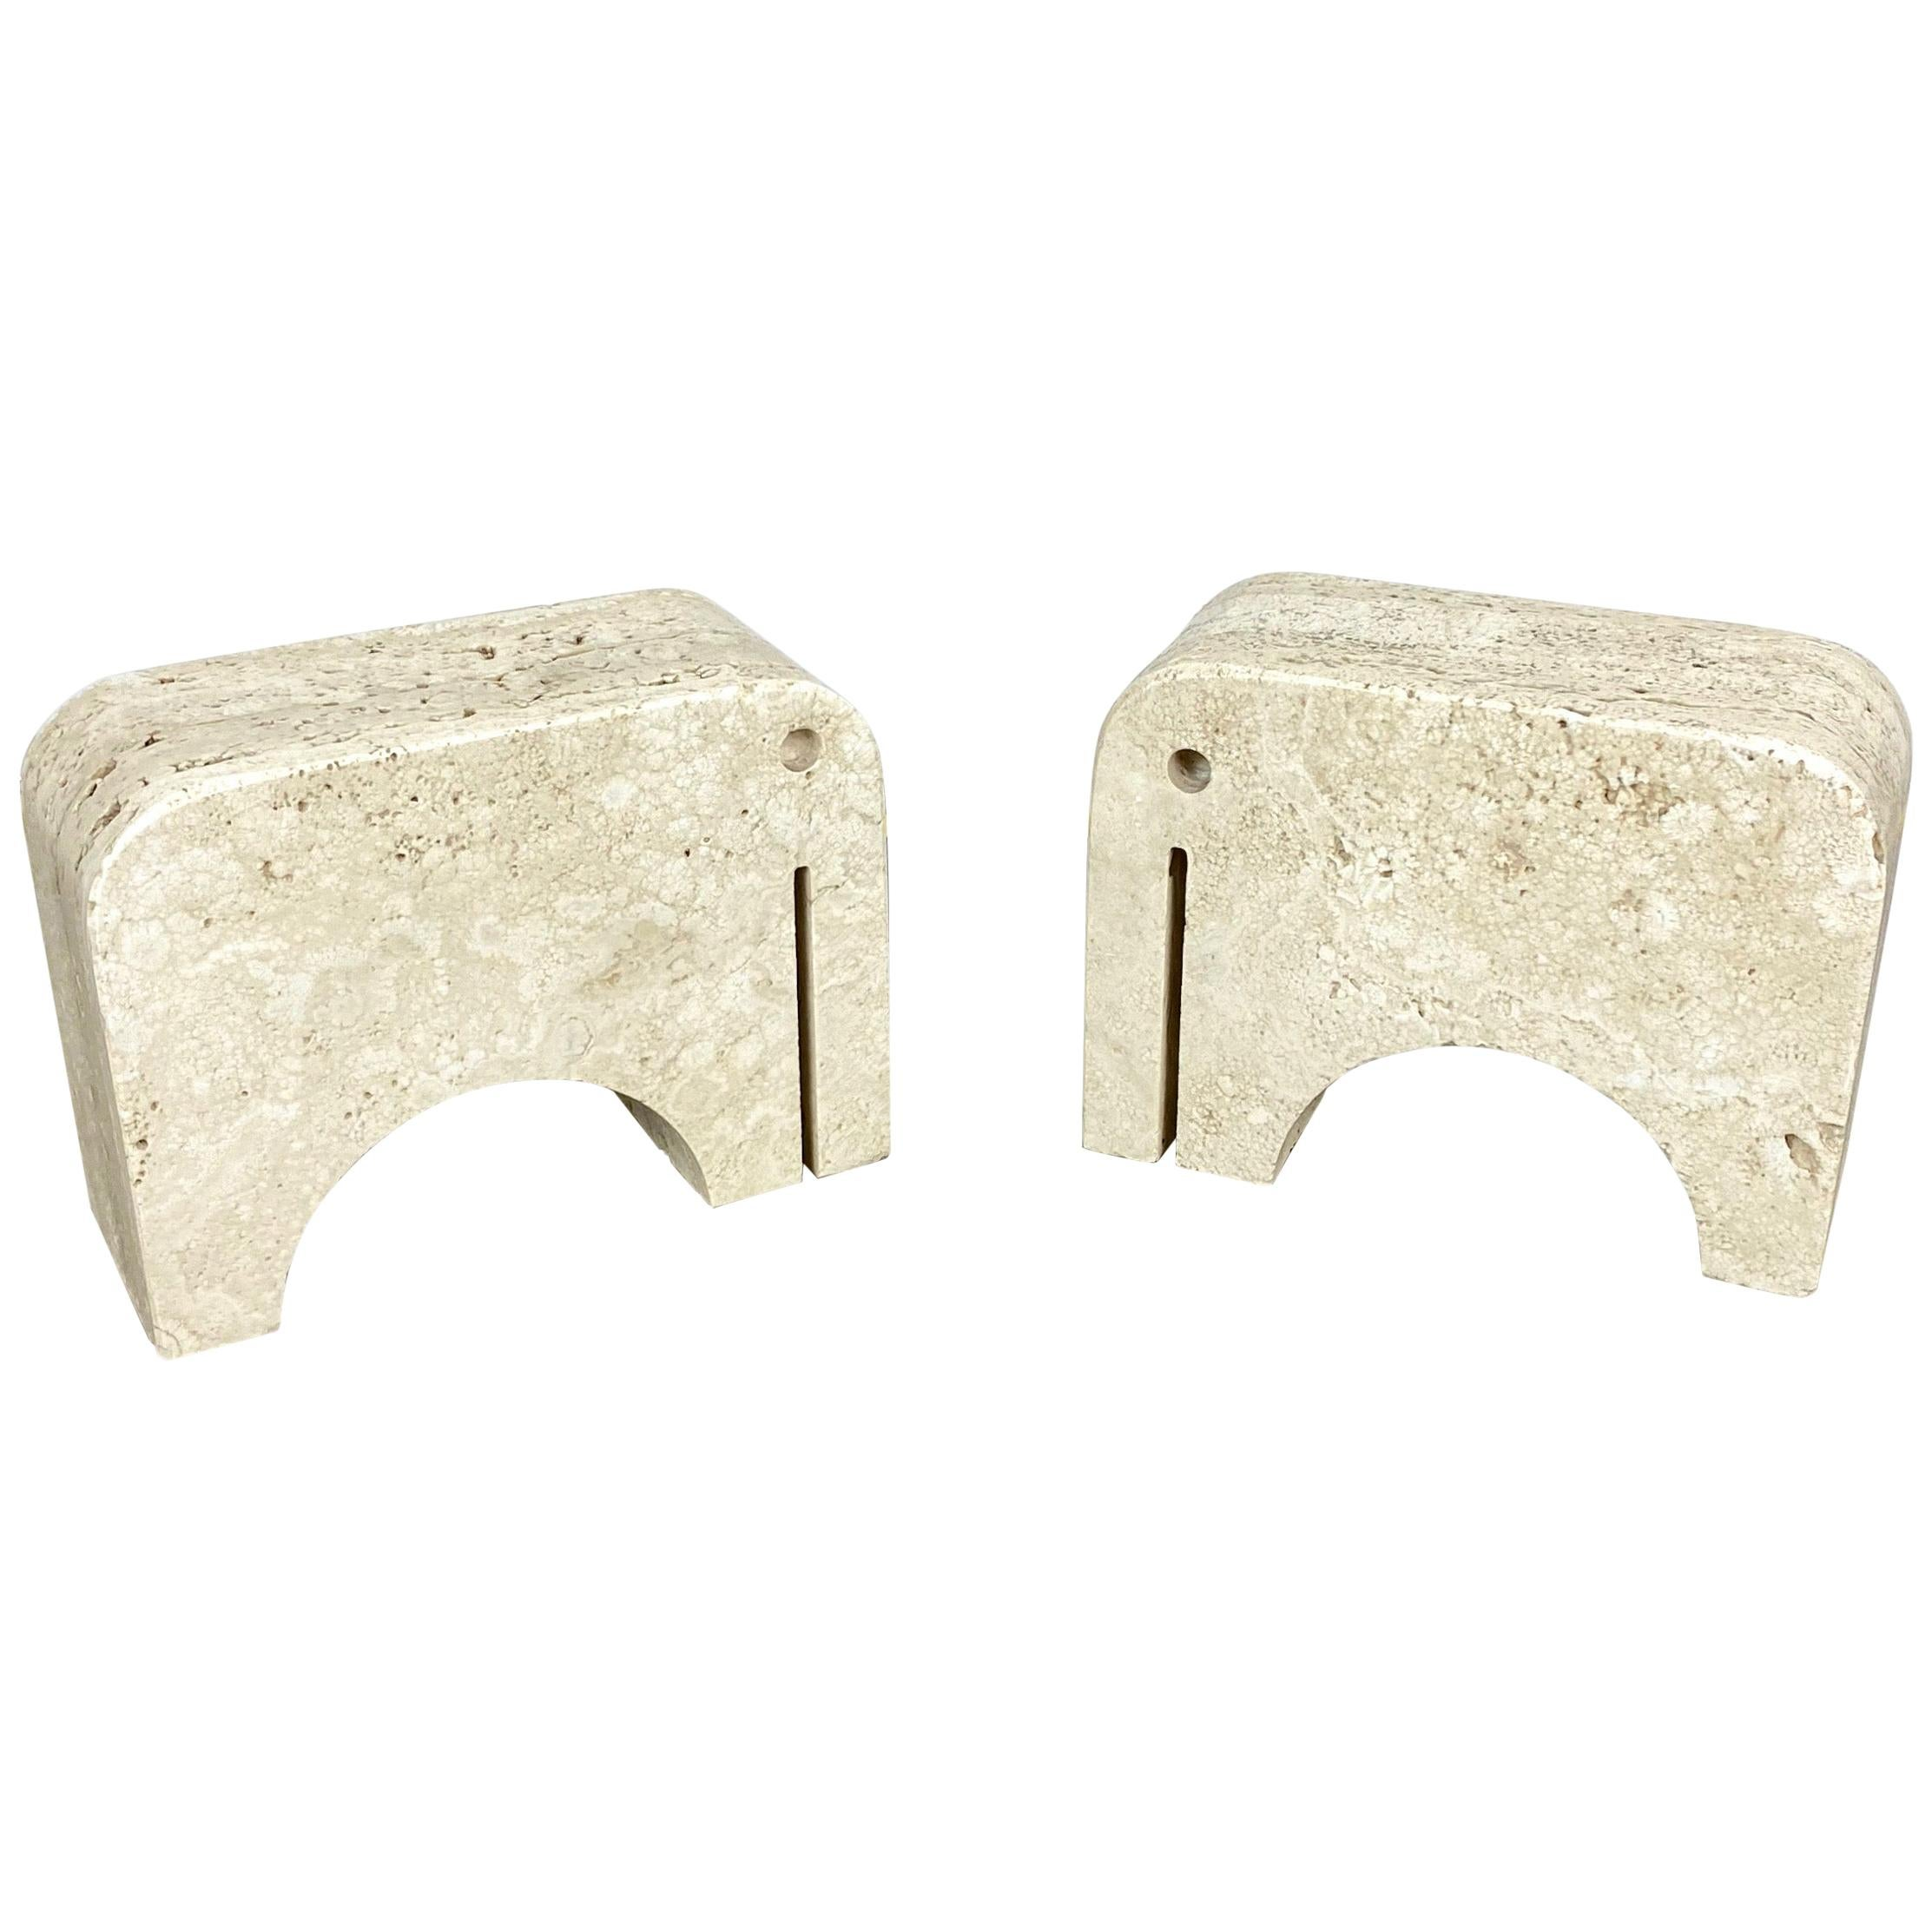 Pair of Travertine Bookends Elephant Sculpture by Fratelli Mannelli, Italy 1970s